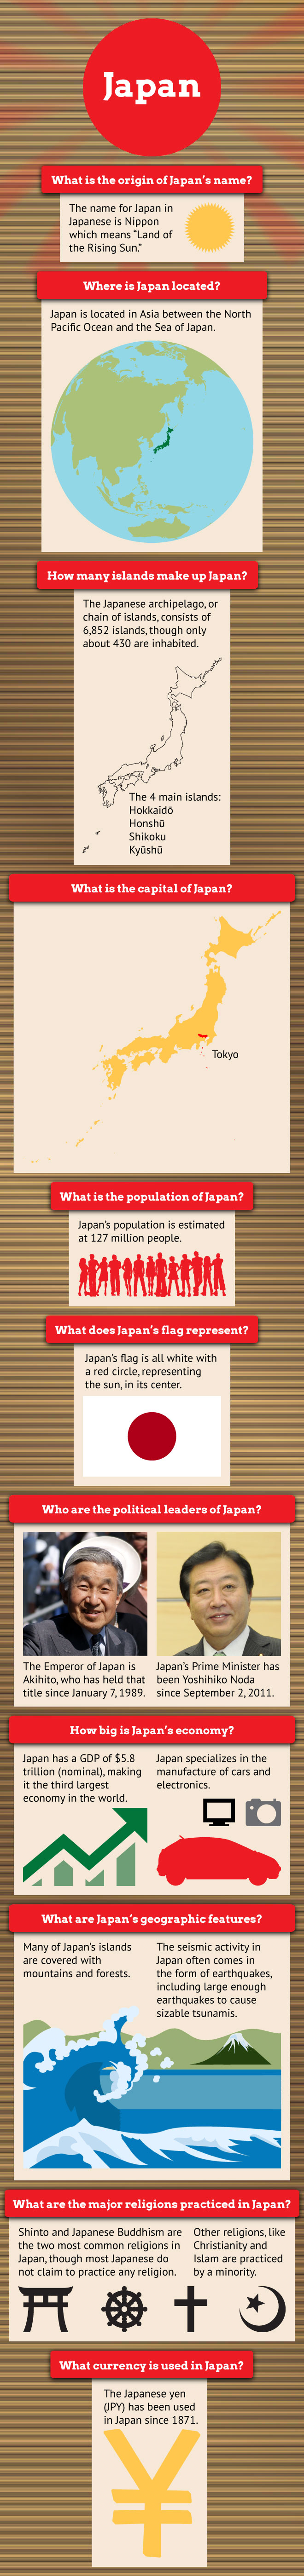 Fast Facts of Japan